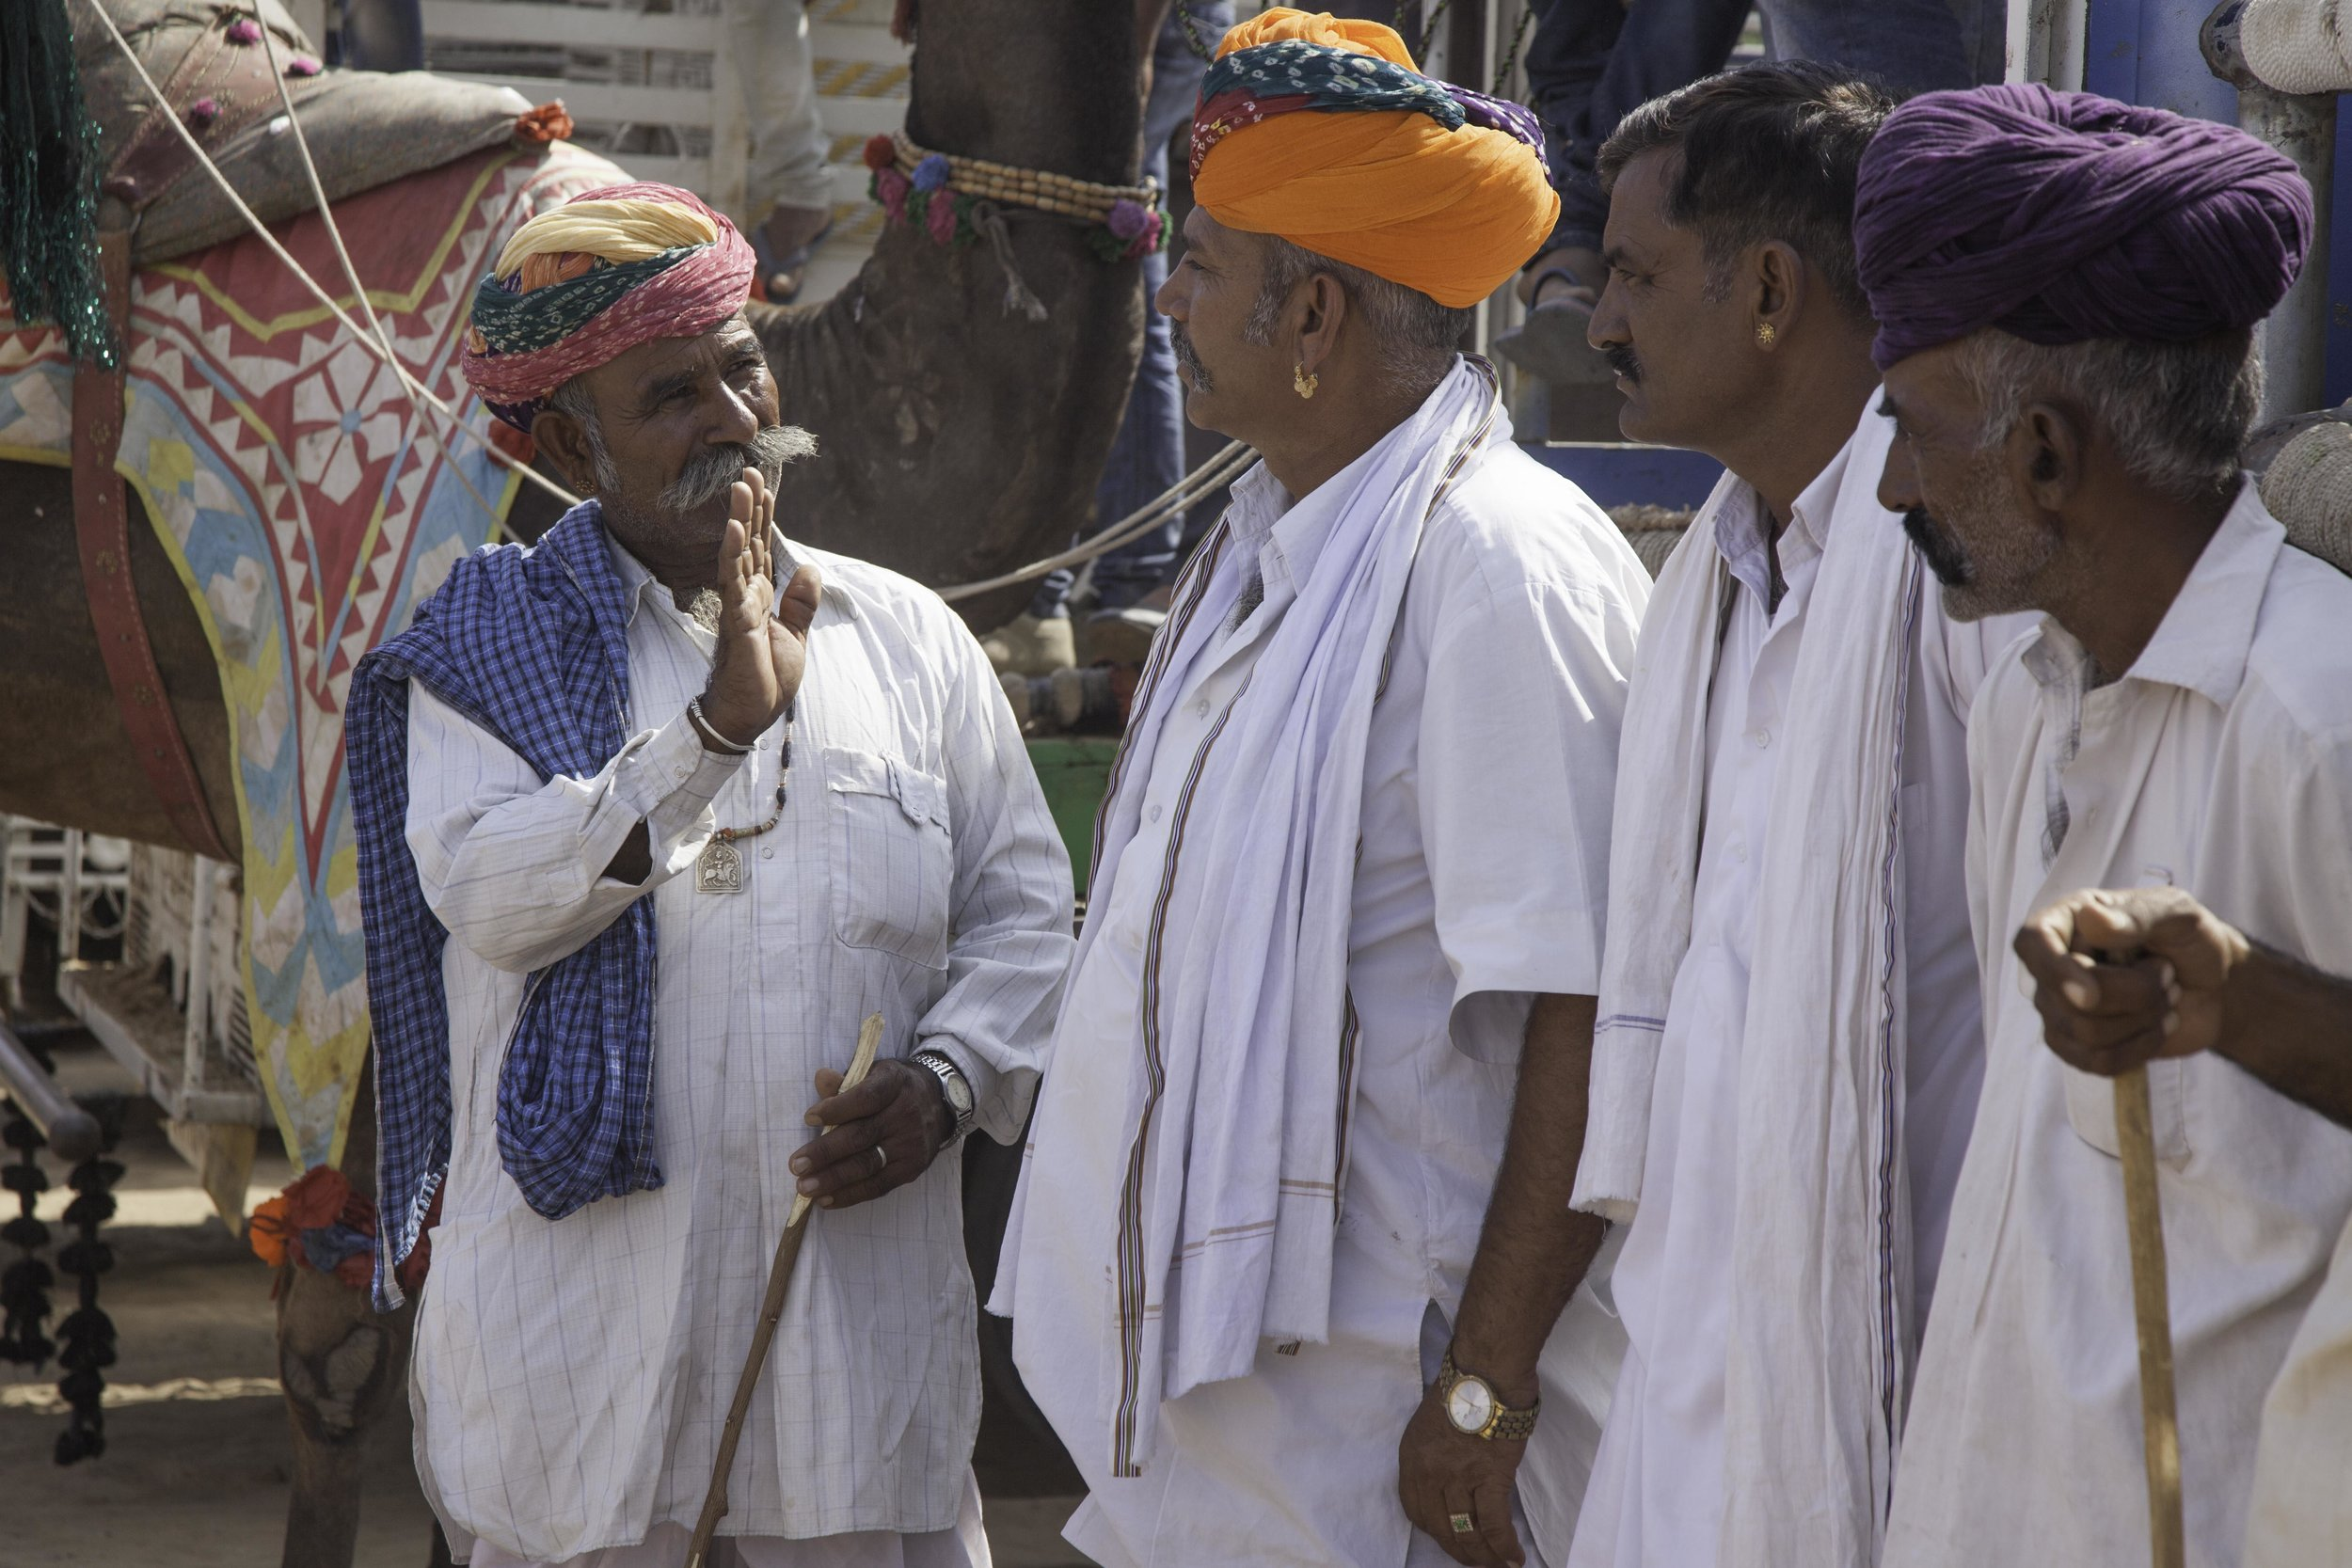 Rajasthani men discussing the festivities.